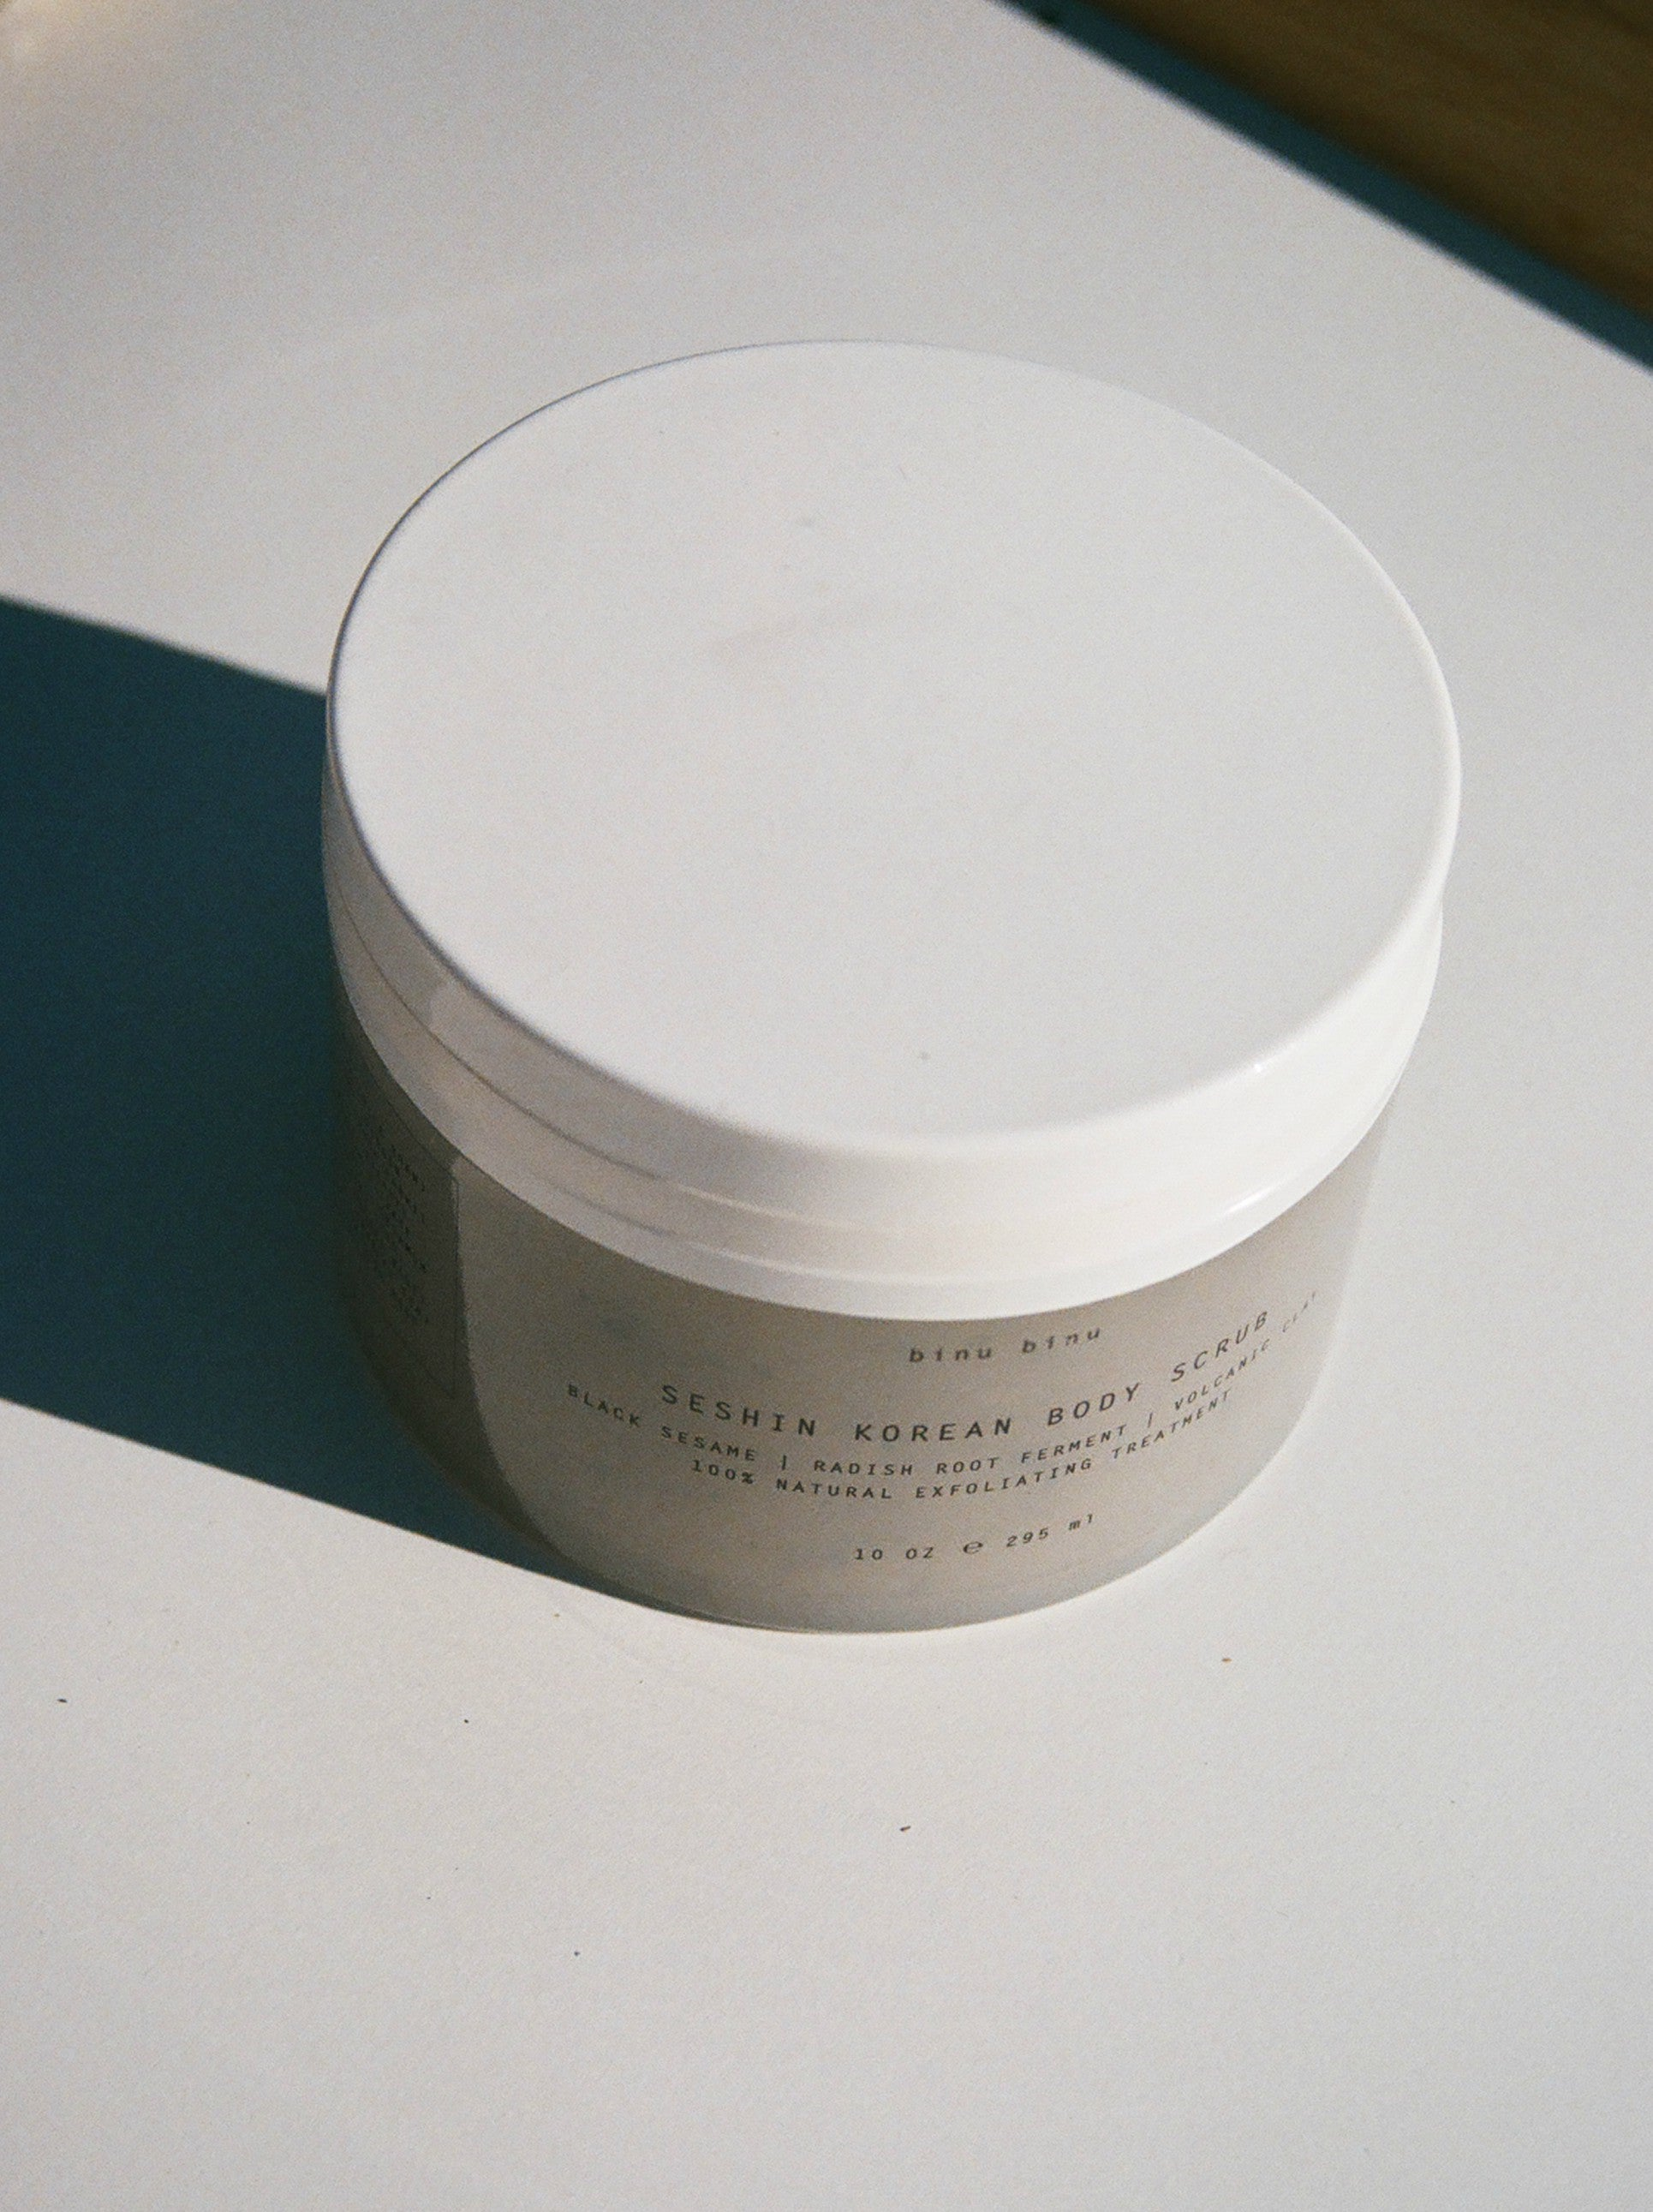 Binu Binu Seshin Korean Body Scrub